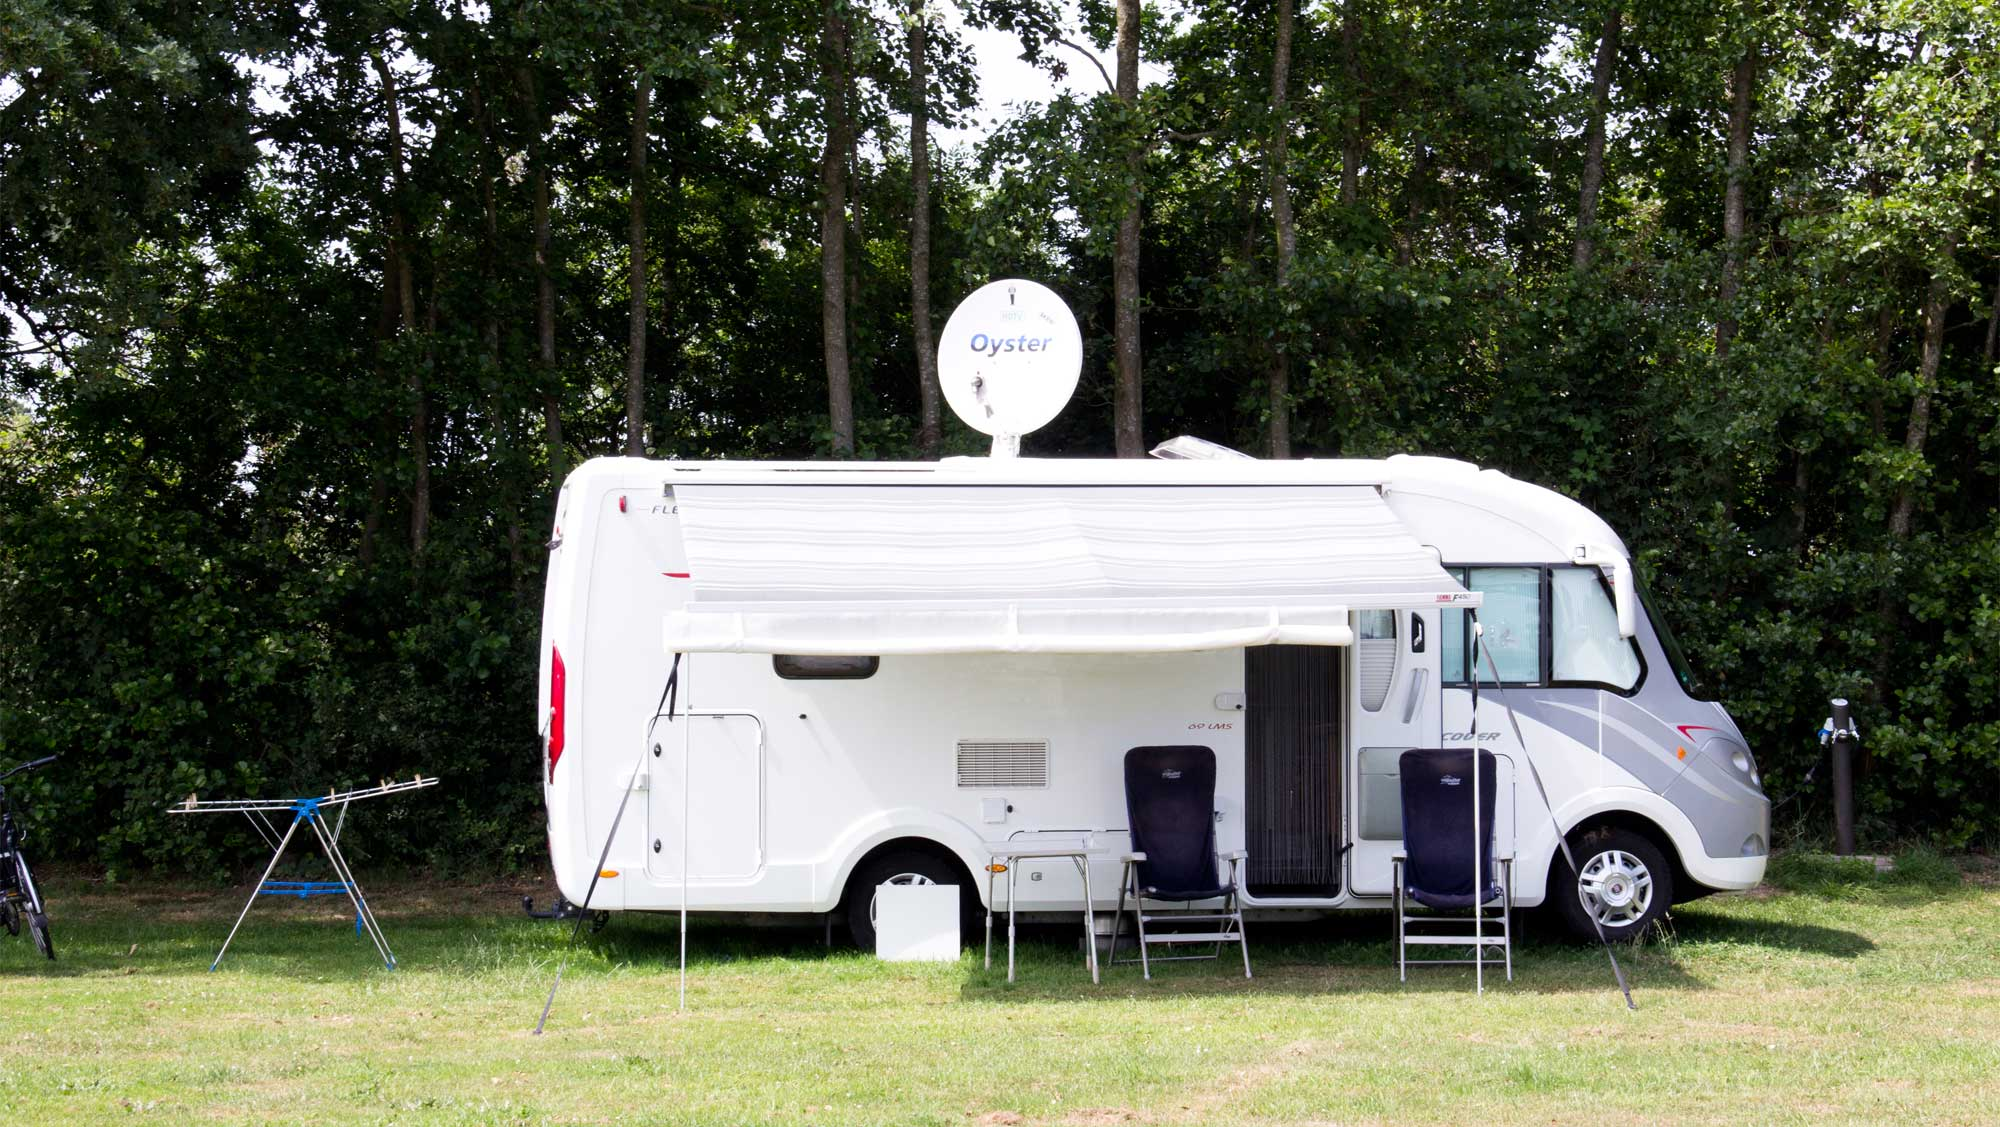 Camperplaats Molecaten Park Landgoed Molecaten 01